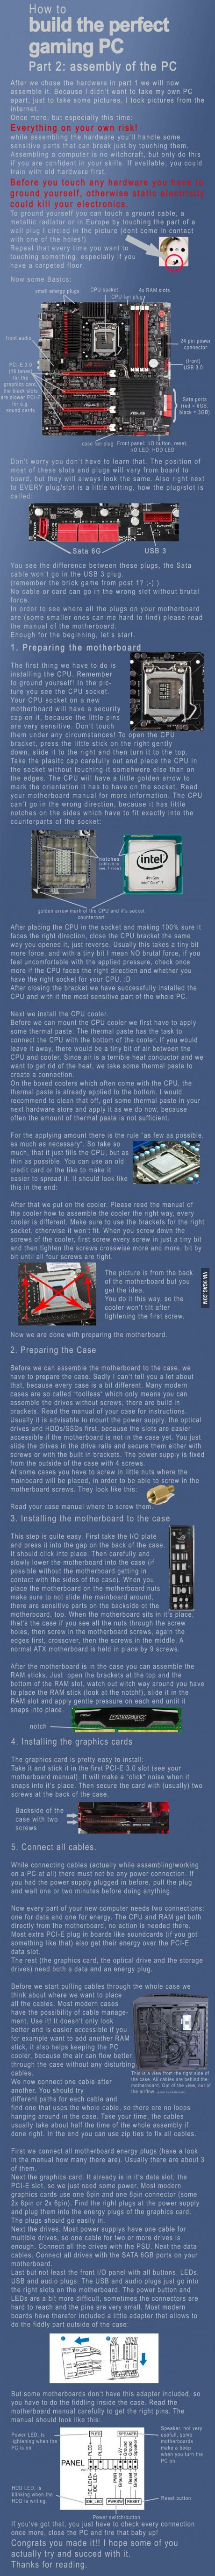 Part 2: assembly of the PC